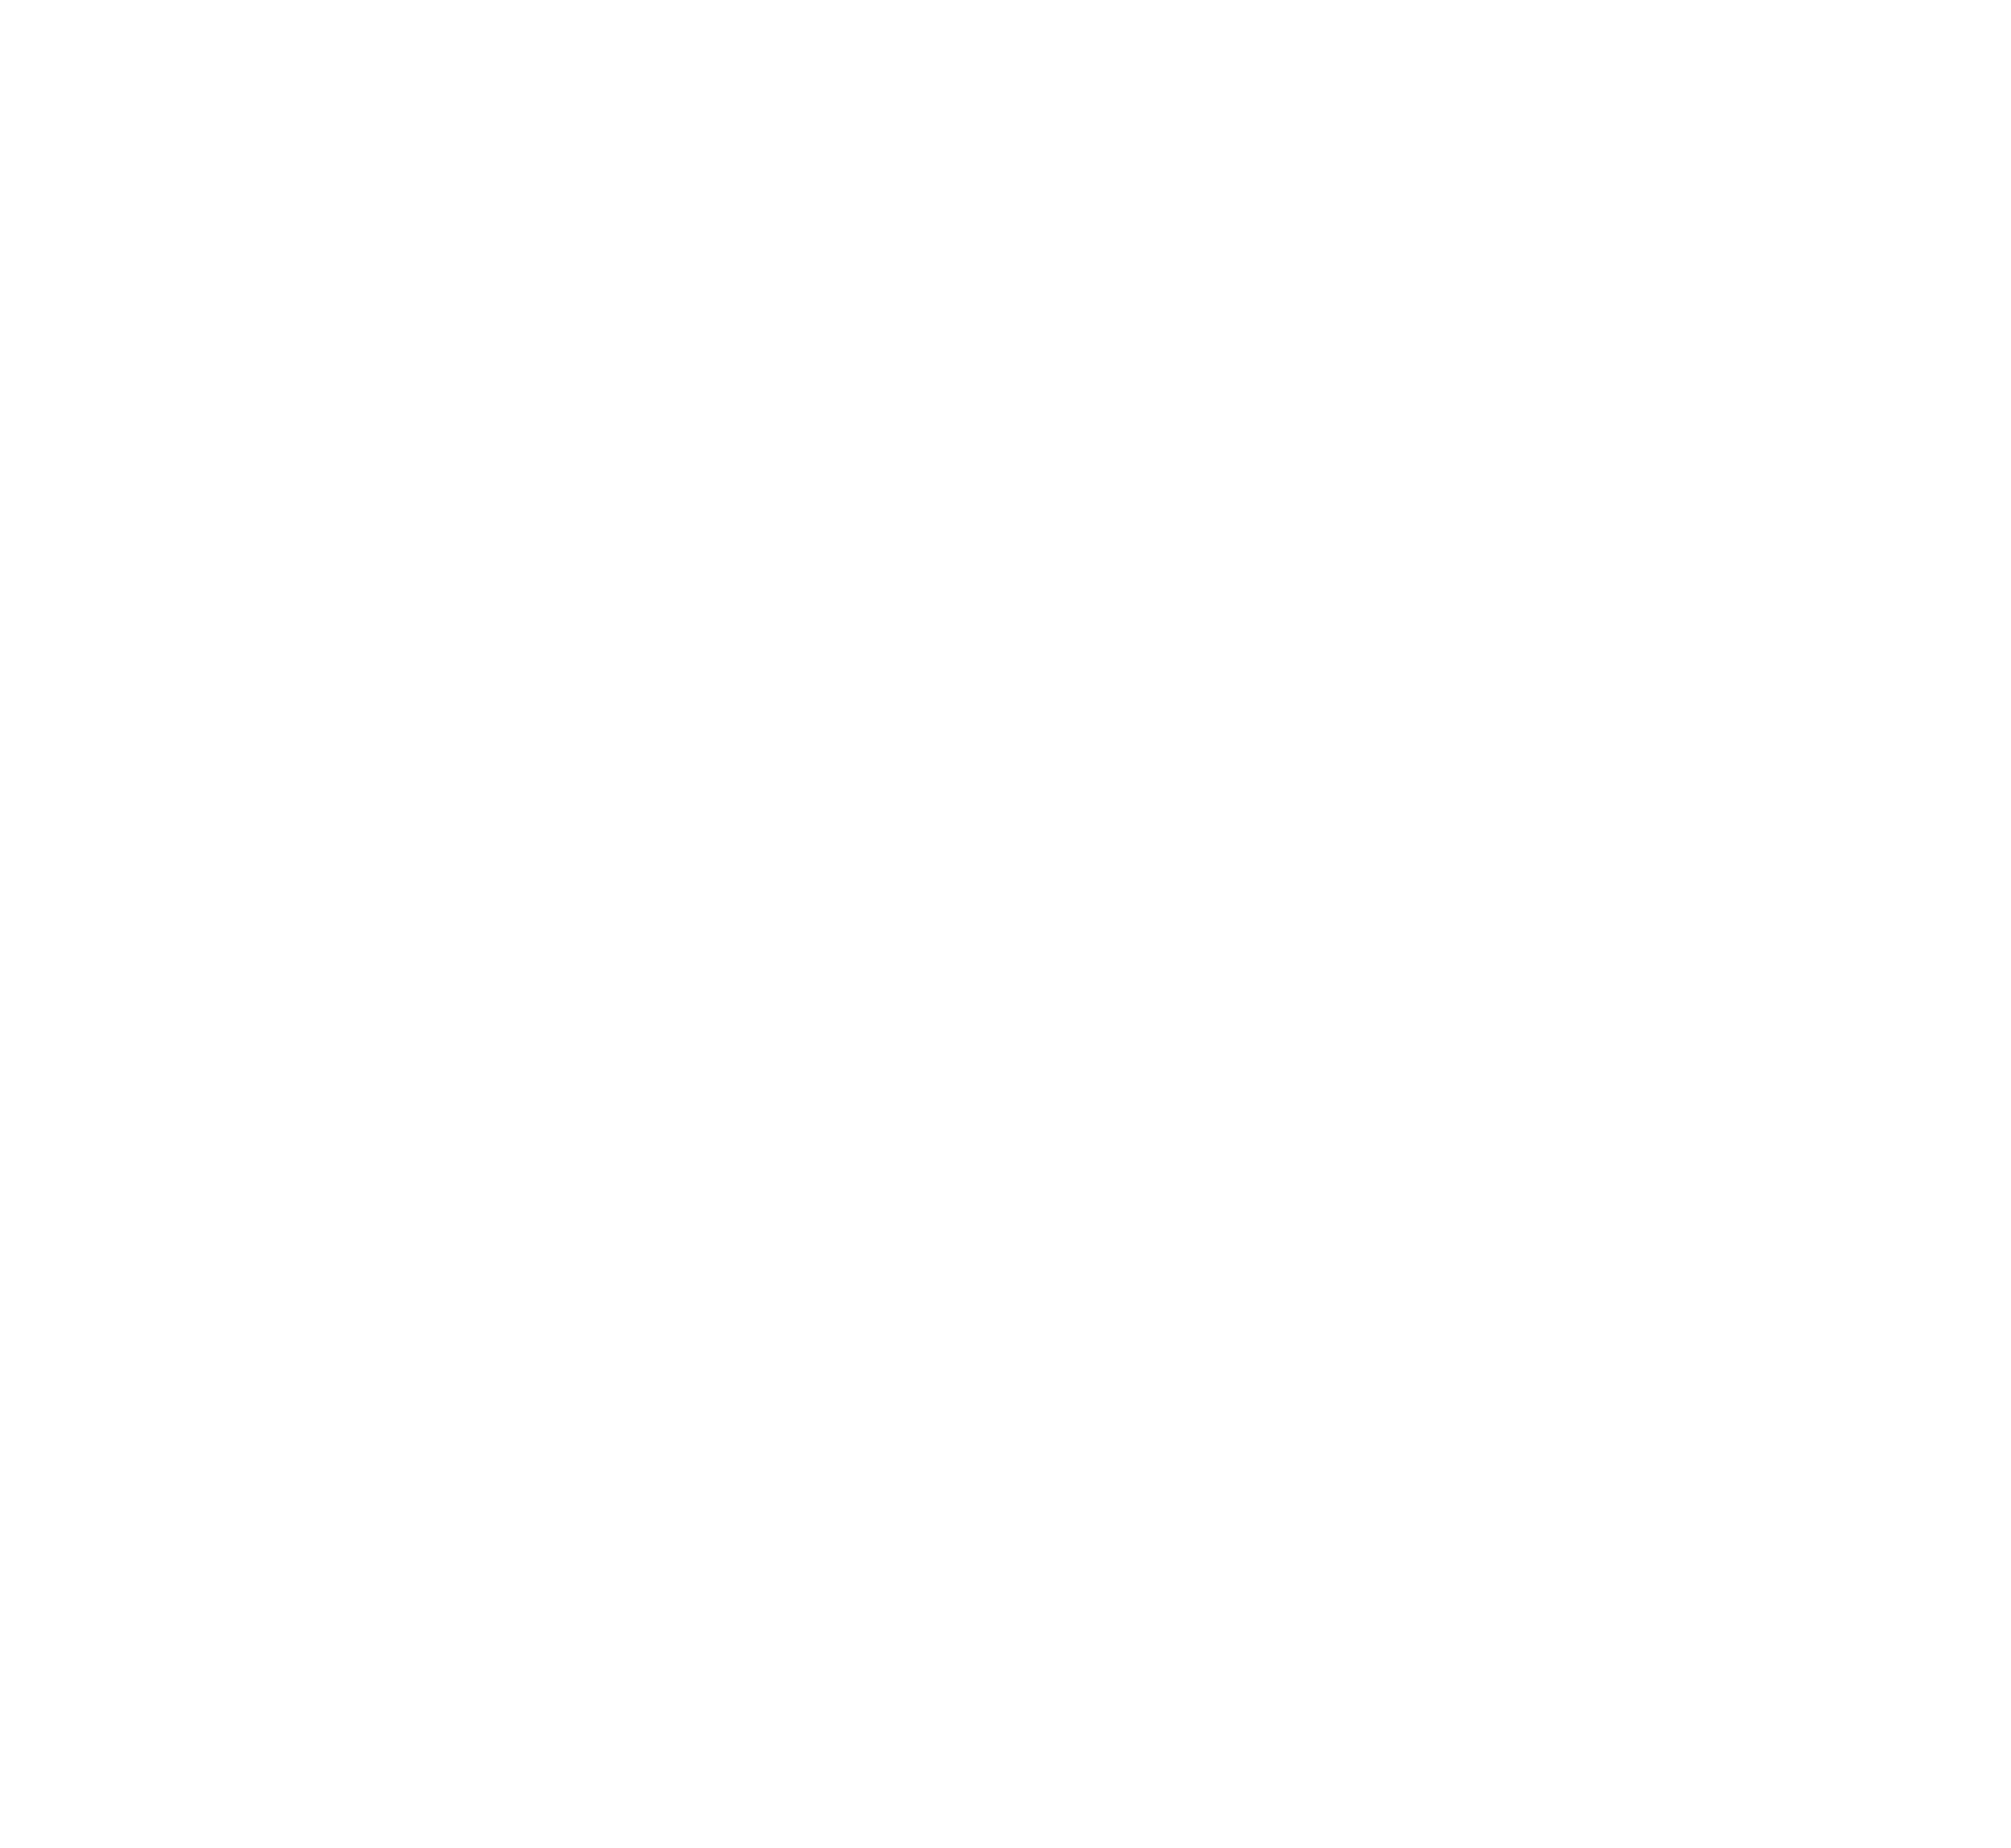 Icon representing an audiobook